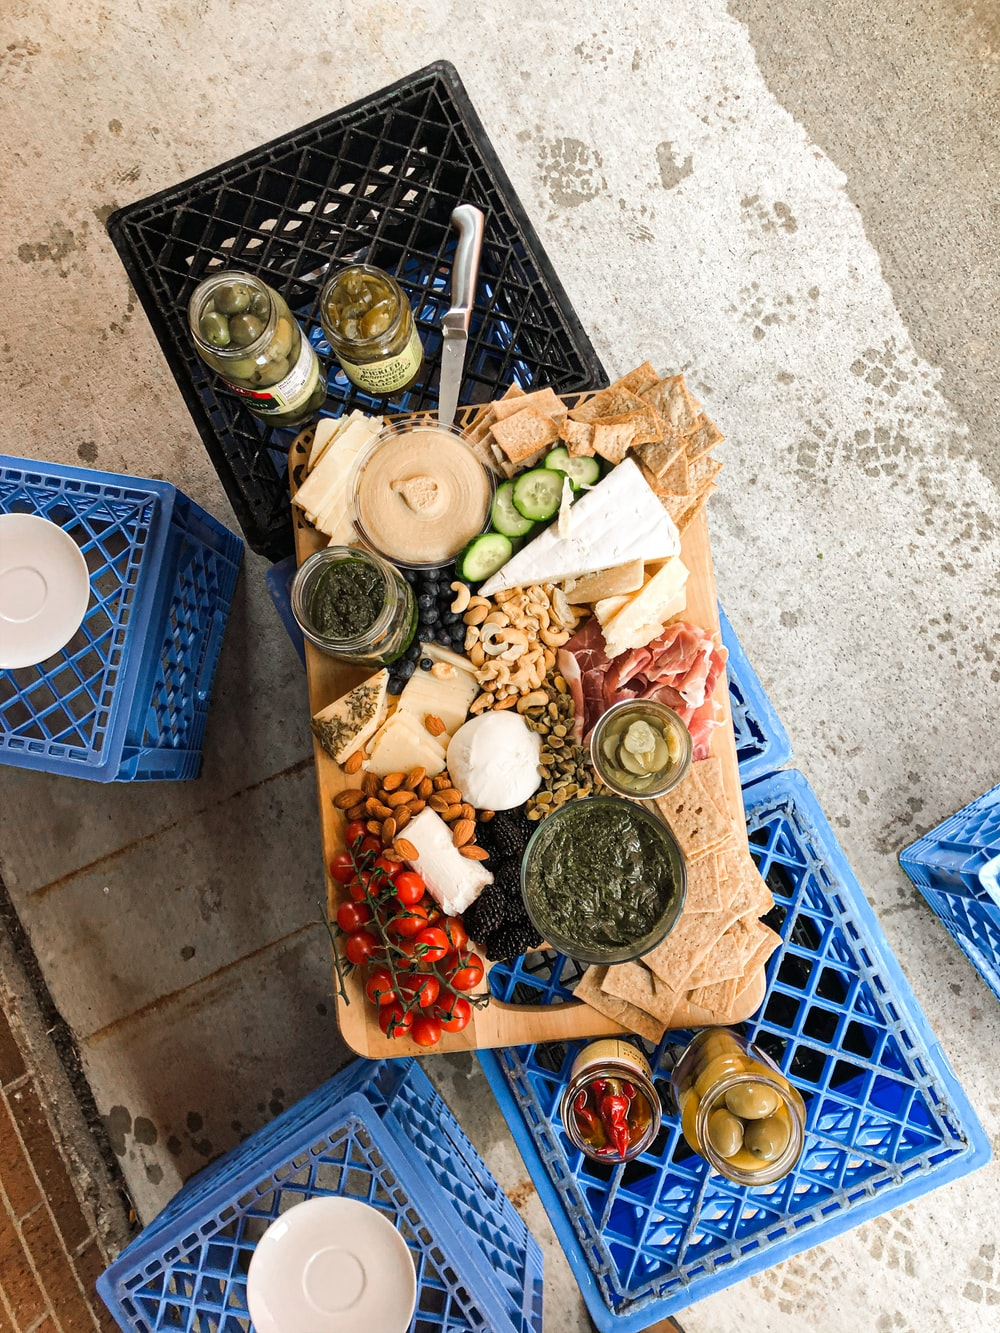 assorted food on blue plastic crate